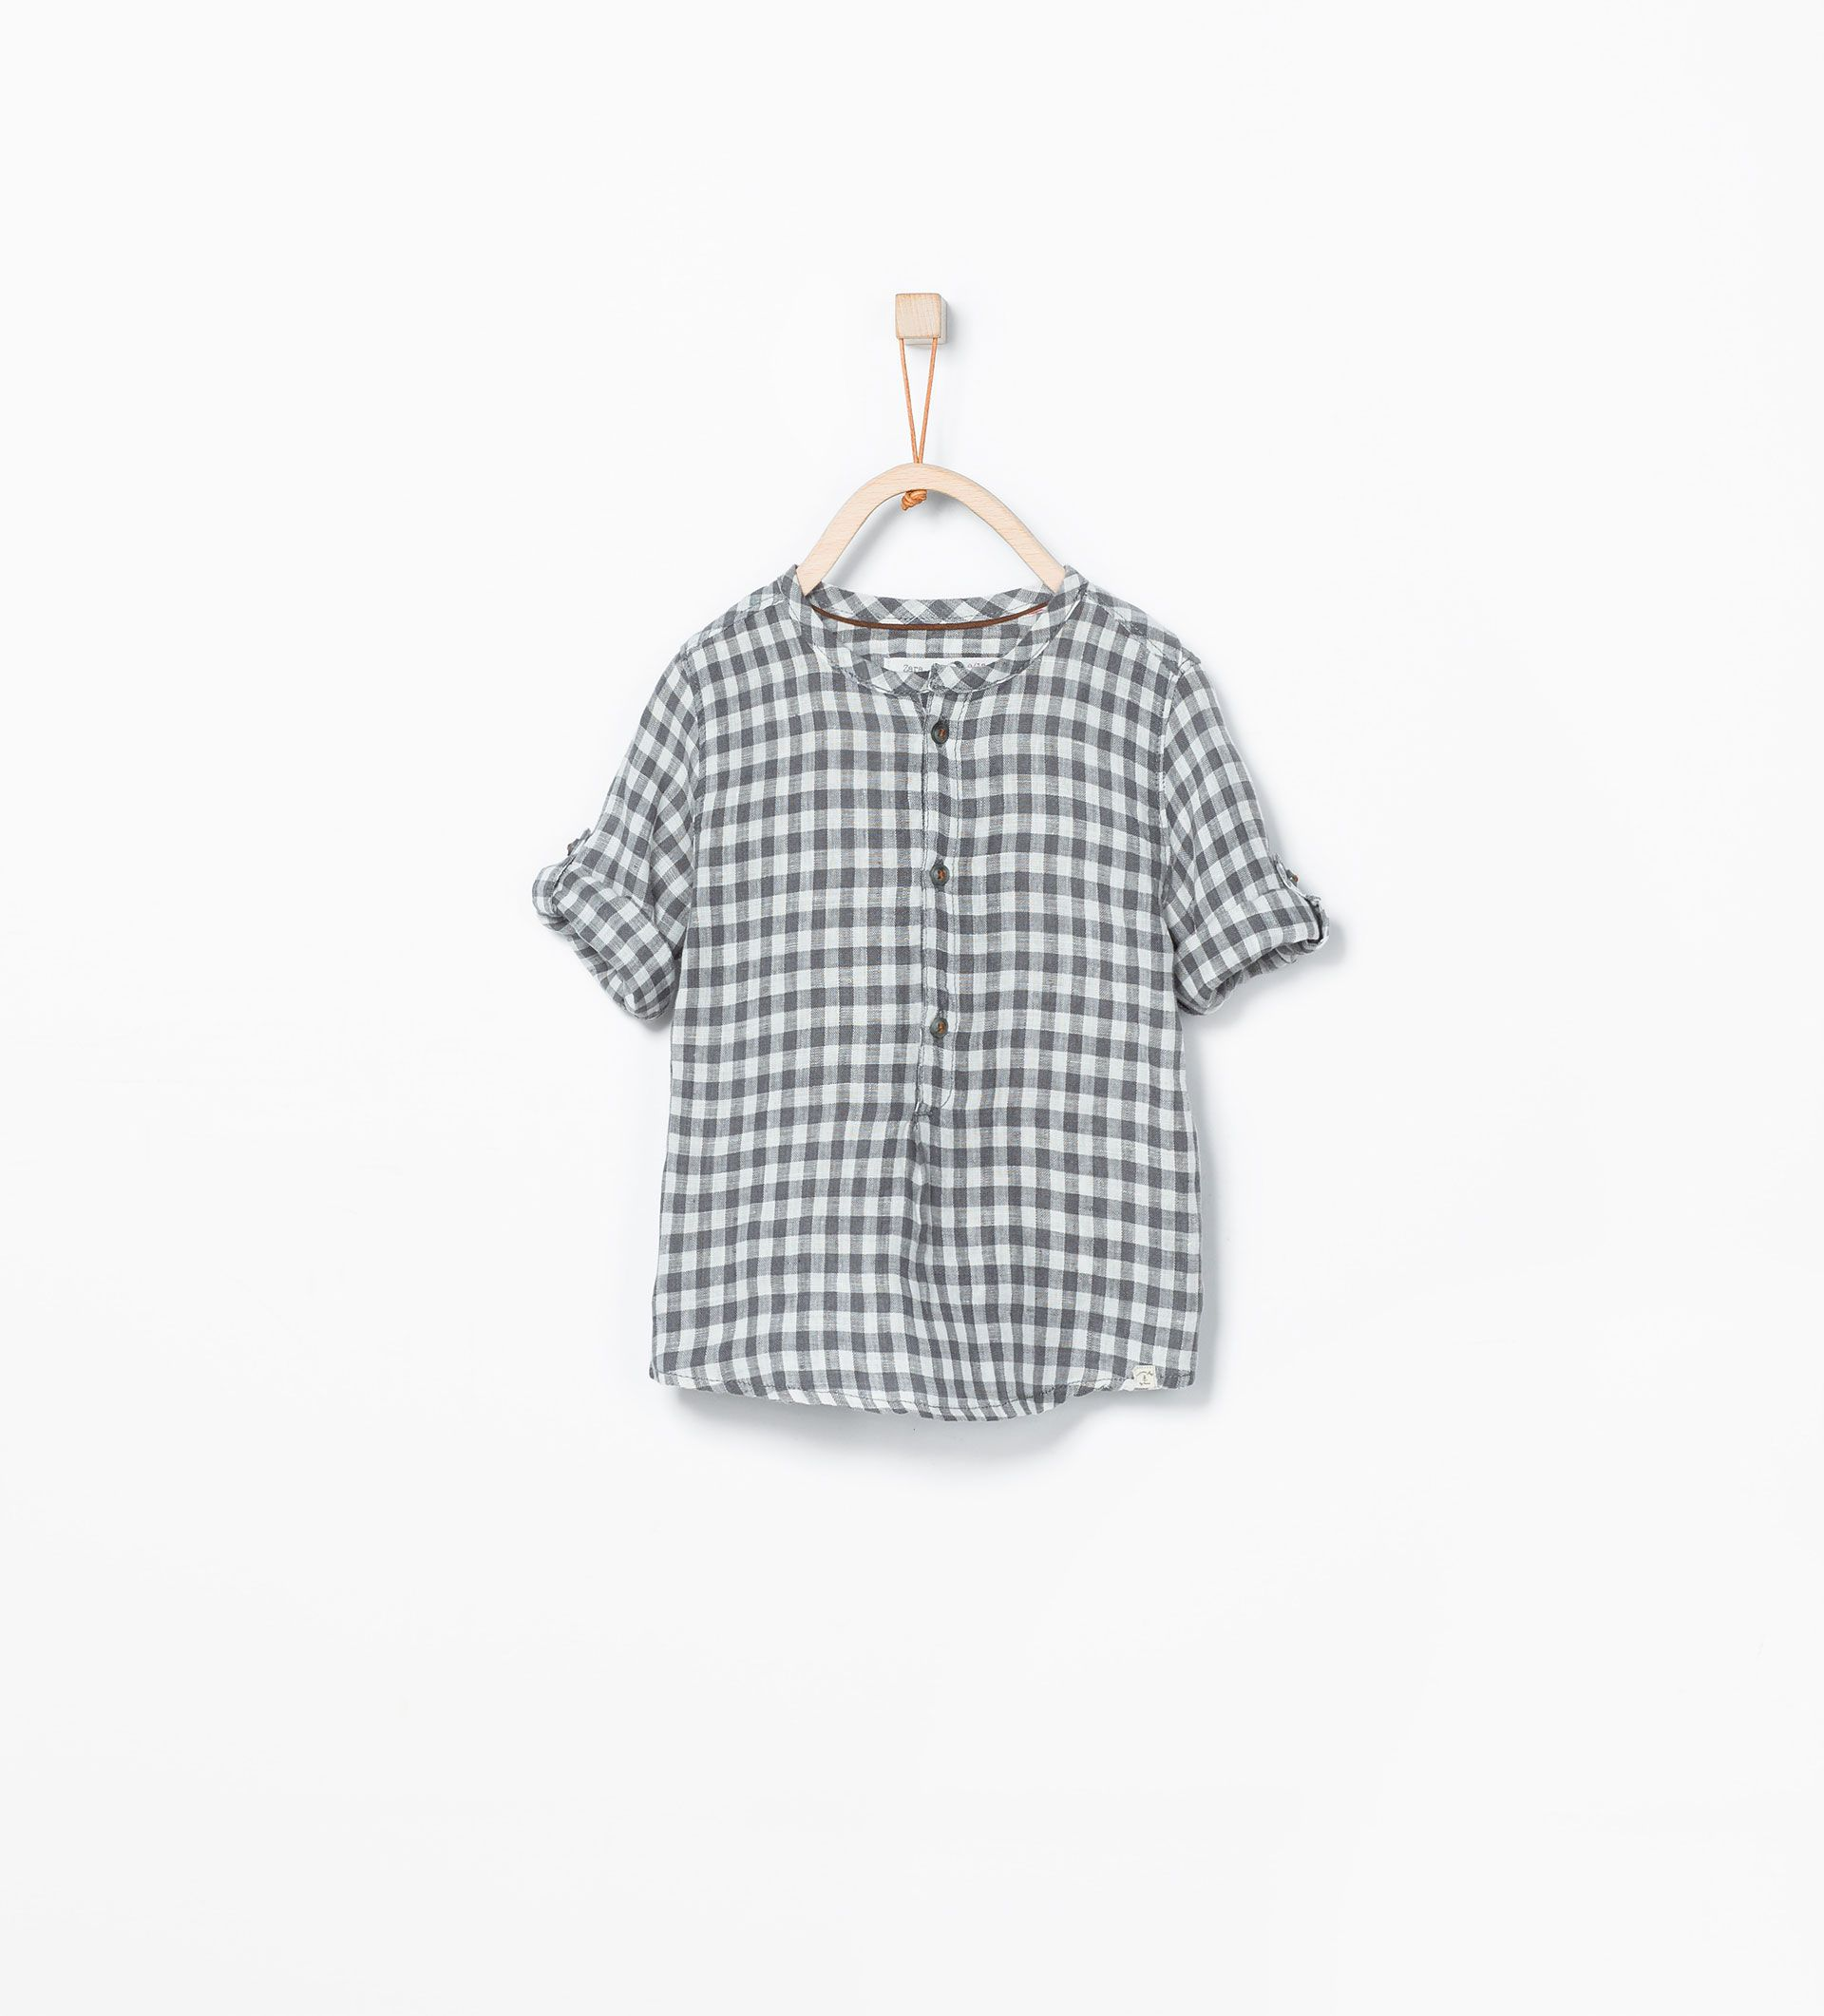 ZARA - KIDS - Roll-up sleeve check shirt | niños | Pinterest